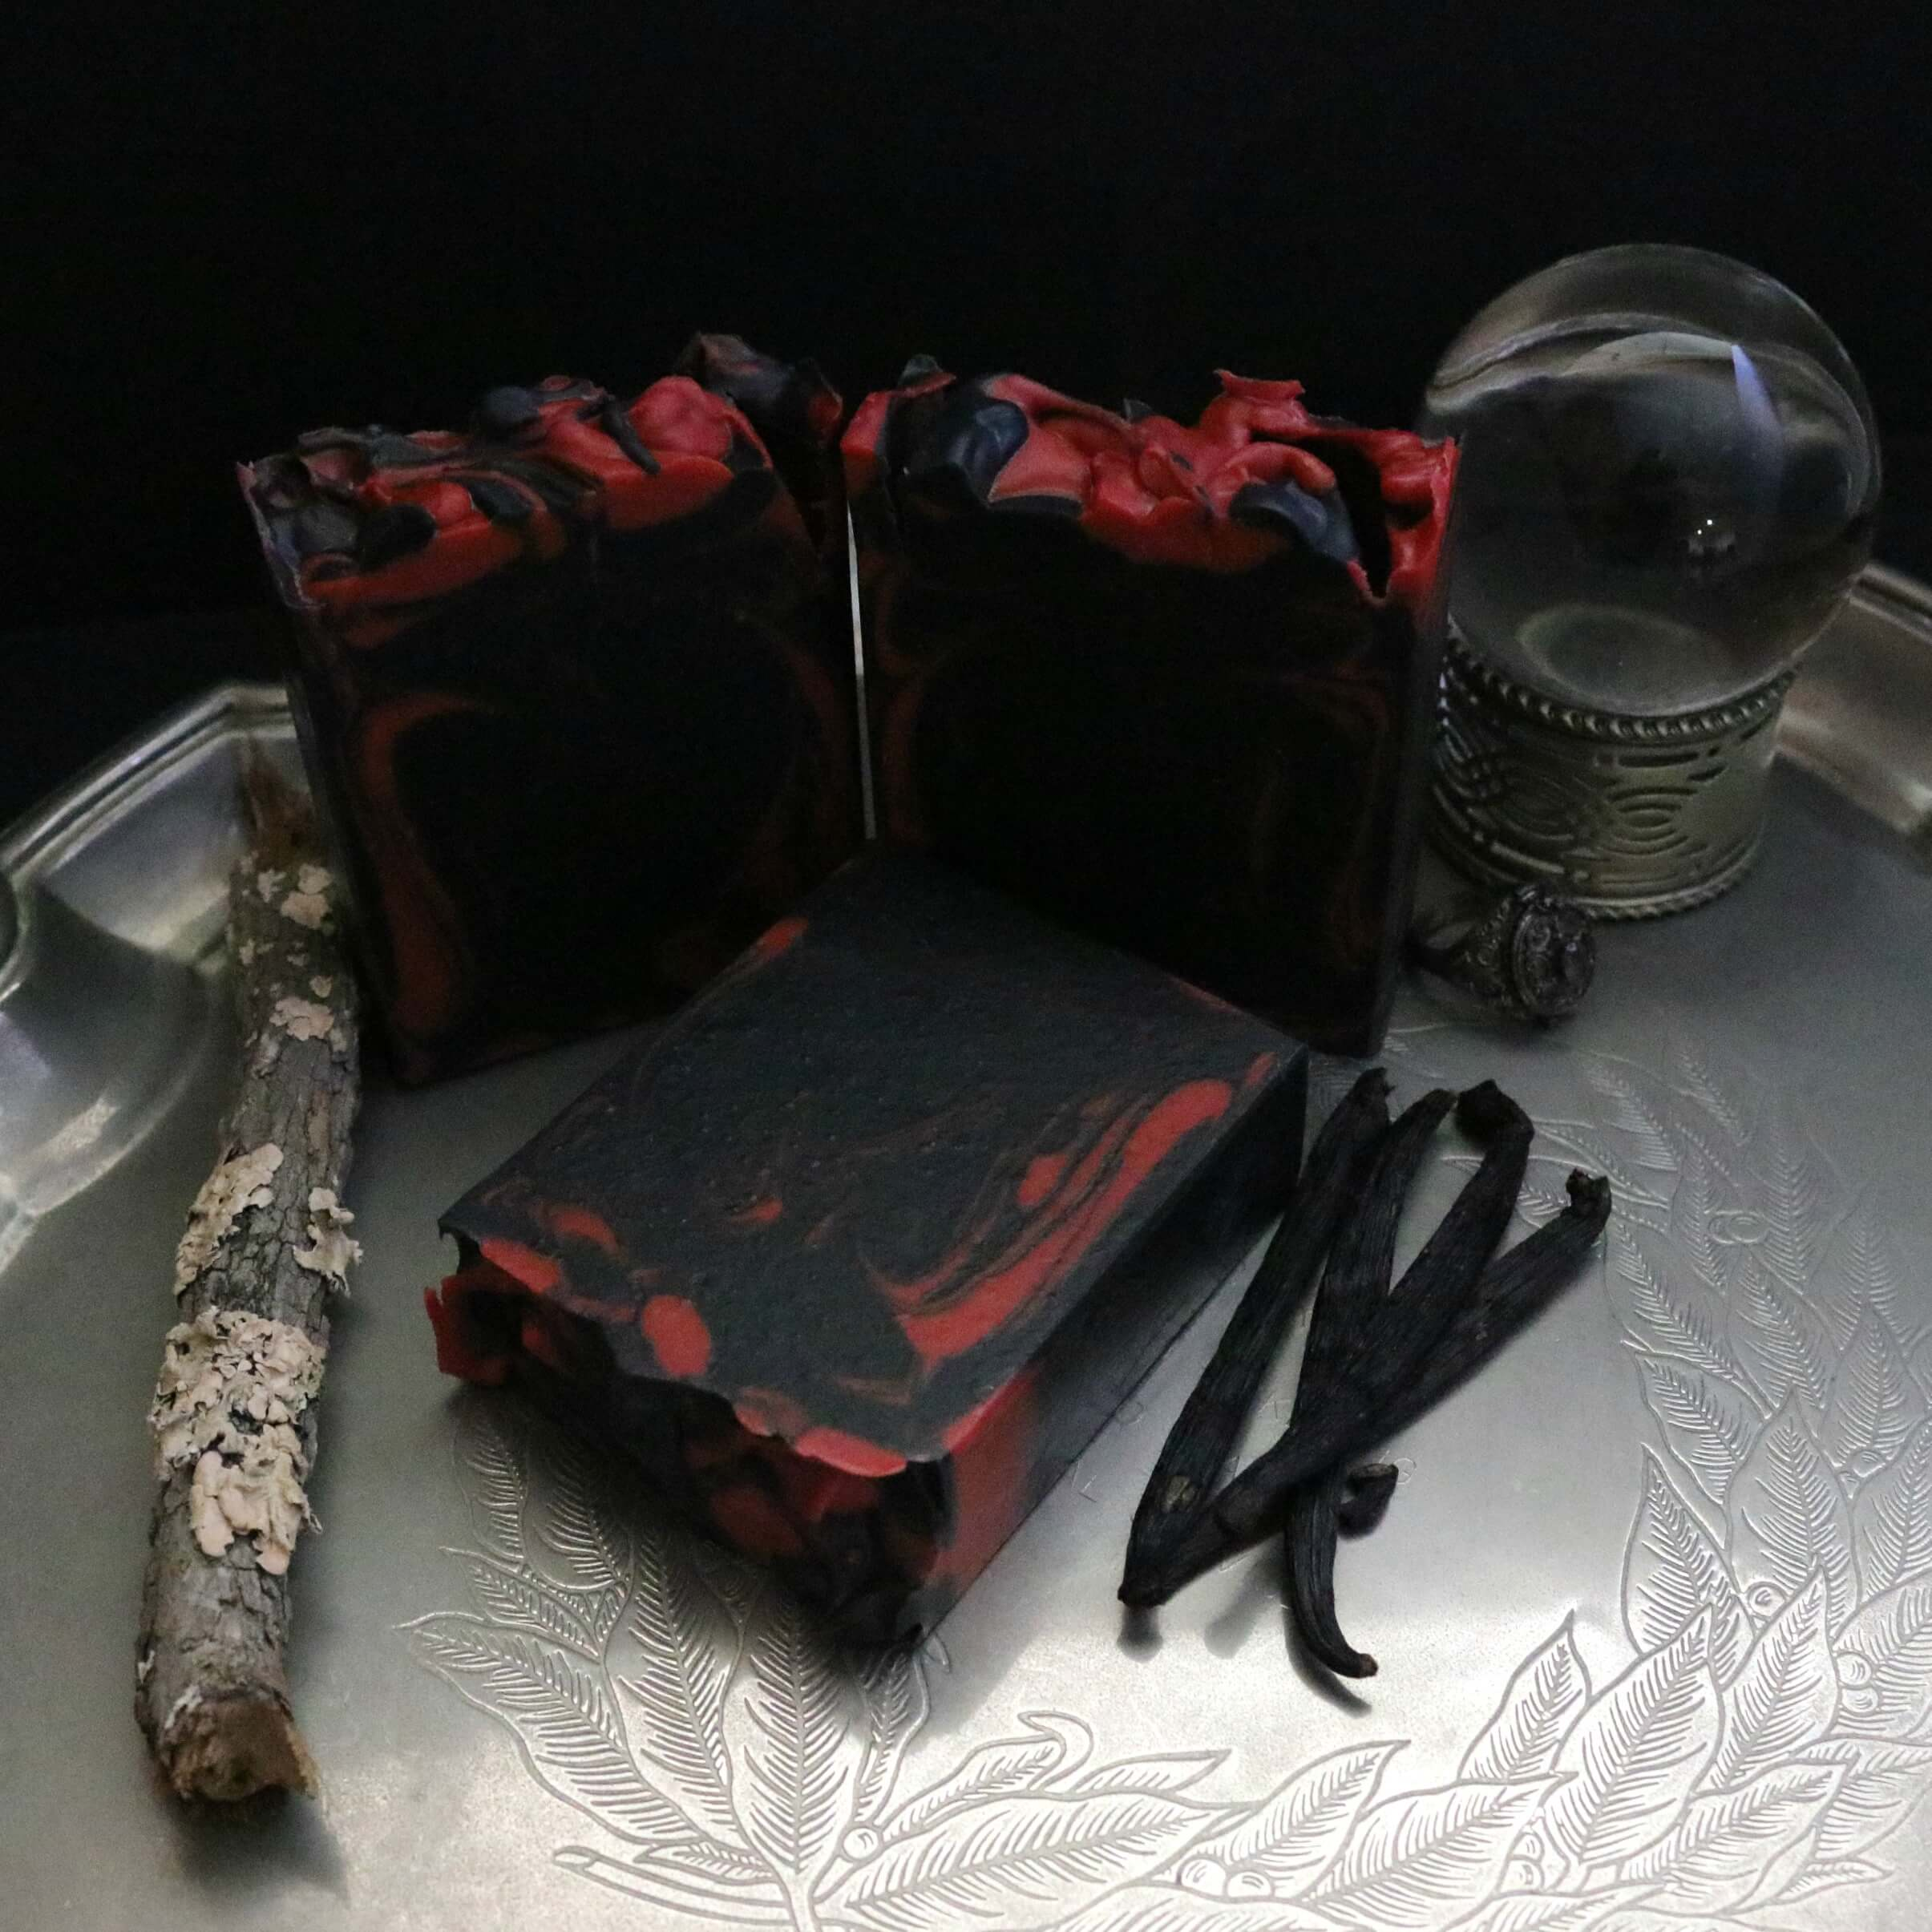 modern gothic soap crystal ball vanilla beans mossy stick witch vibes bathroom silver platter